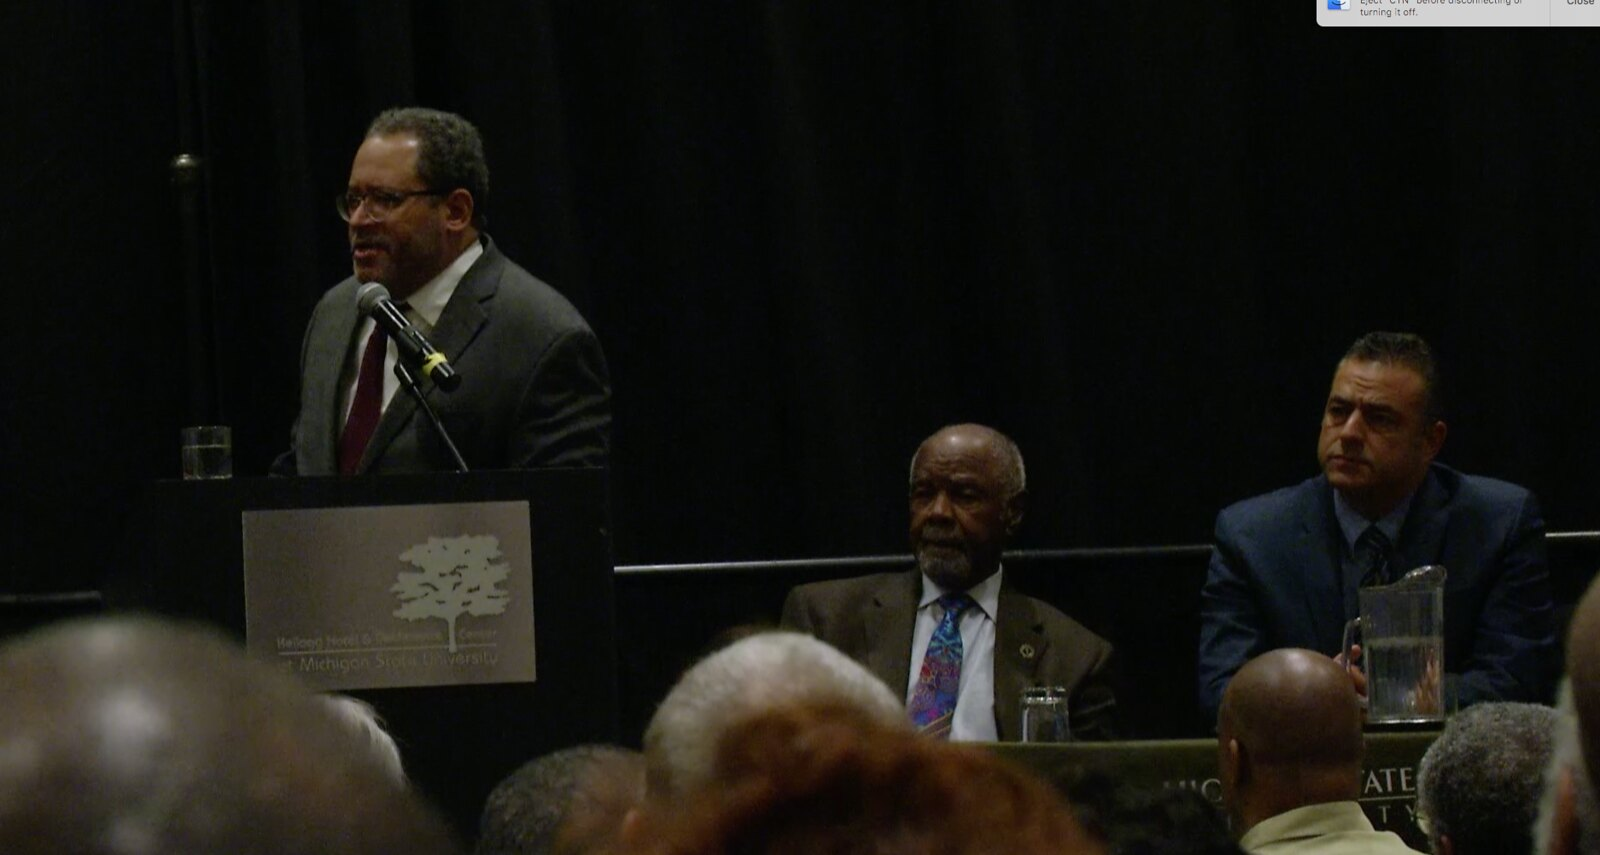 Dr. Michael Eric Dyson Gives Public Lecture For Black History Month